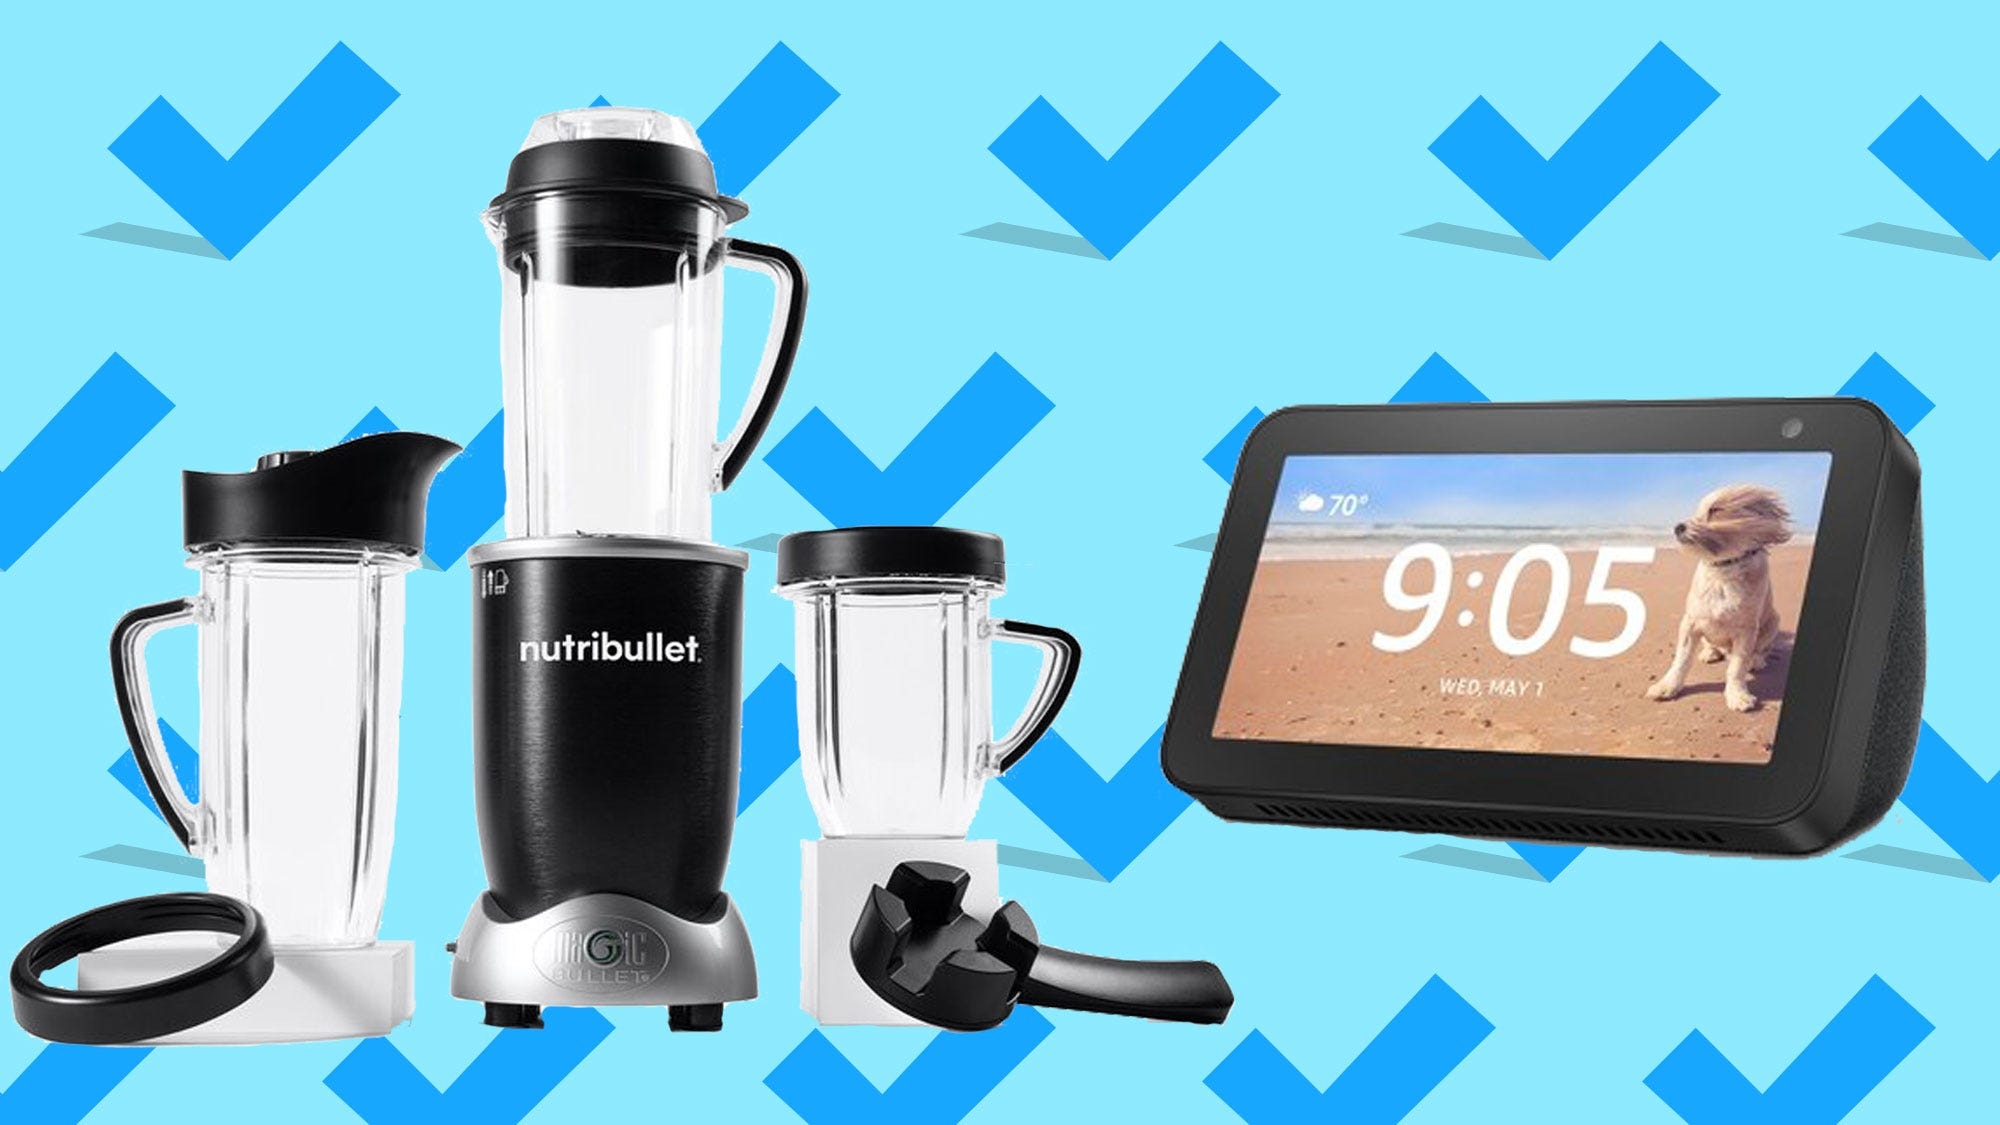 Black Friday 2020: The best early deals to shop from Home Depot, Macy's and more